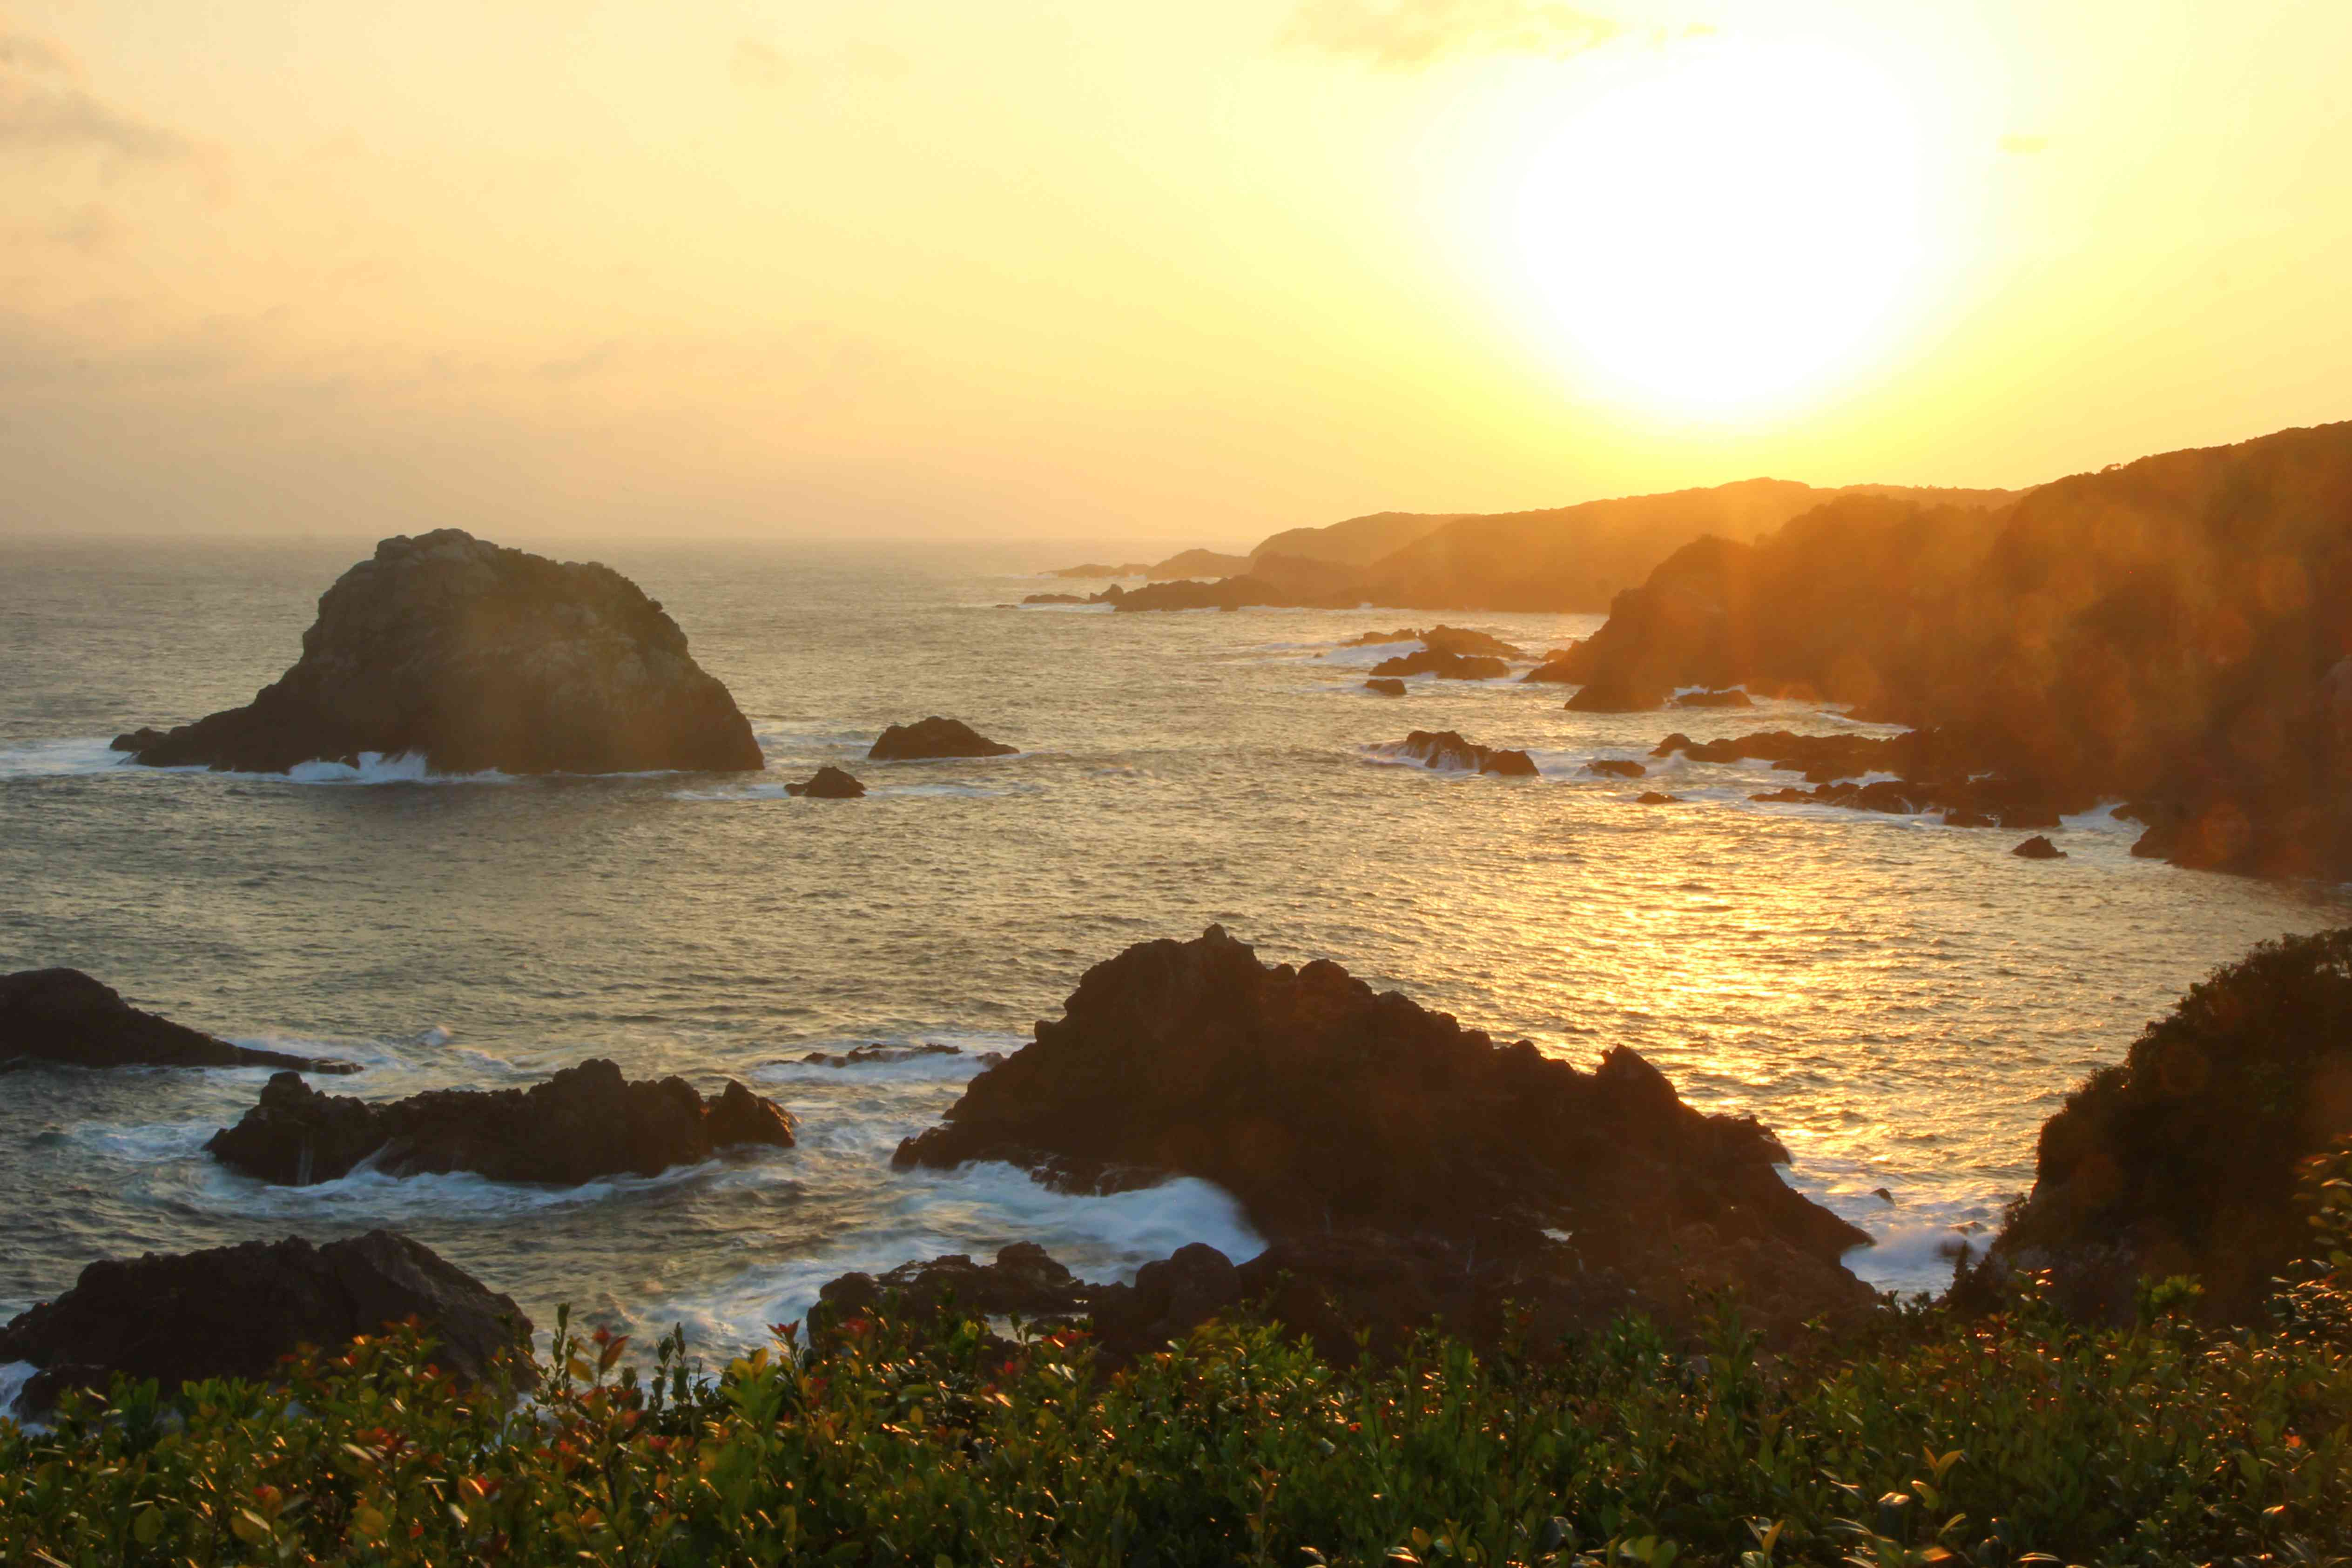 rocky ocean coast with jutting exposed rock formations at sunset